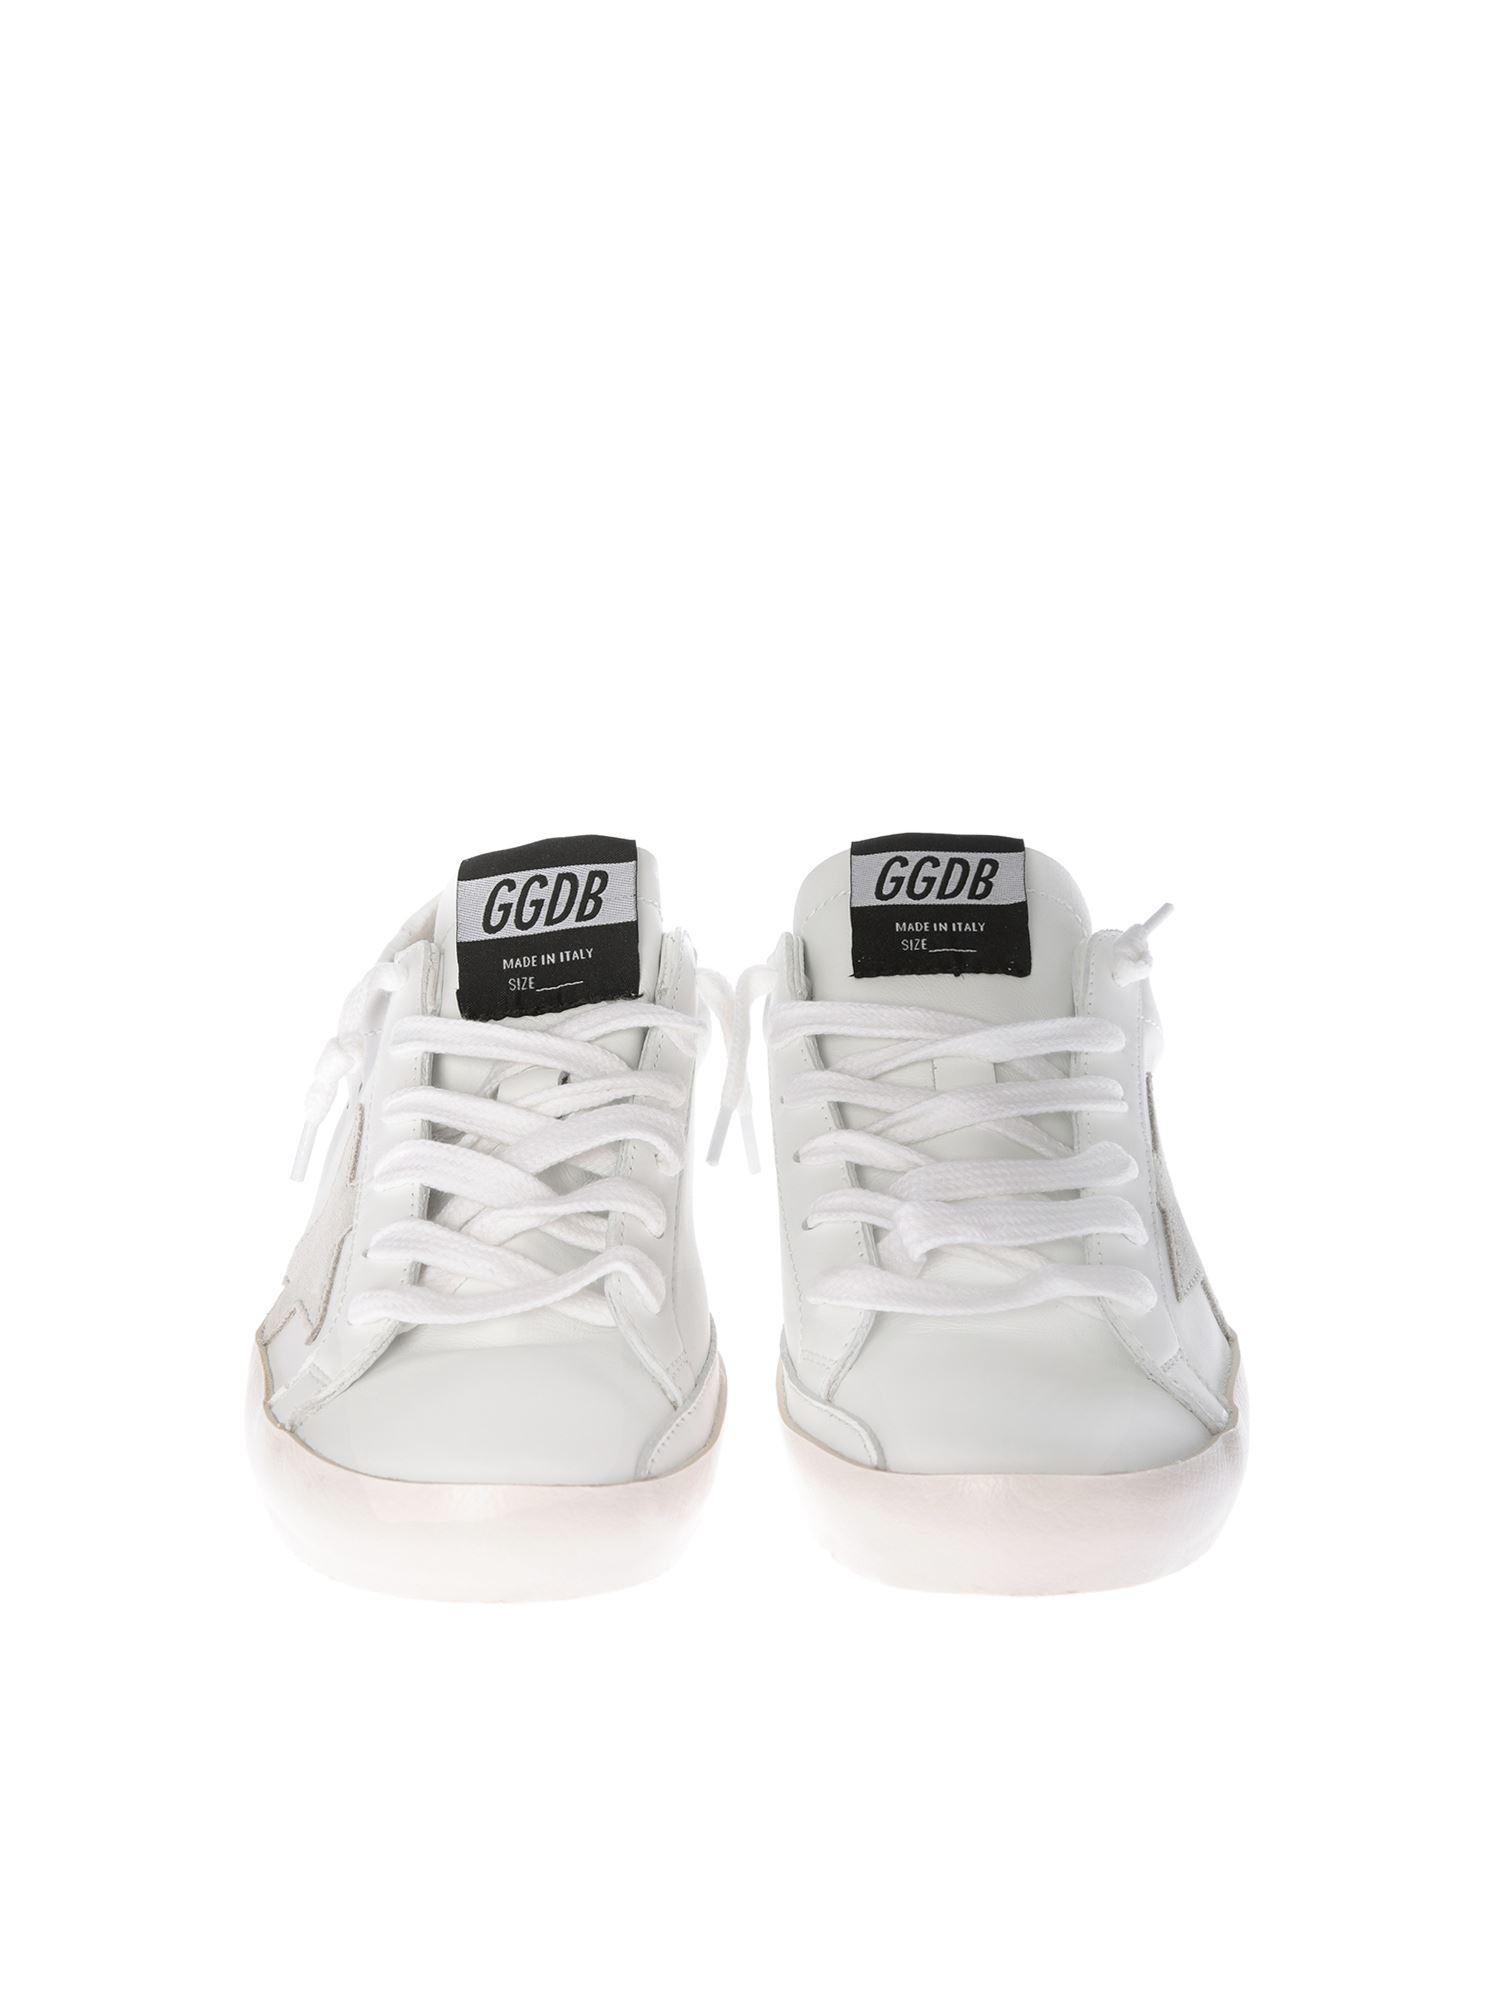 Golden Goose Deluxe Brand White Leather Superstar Sneakers